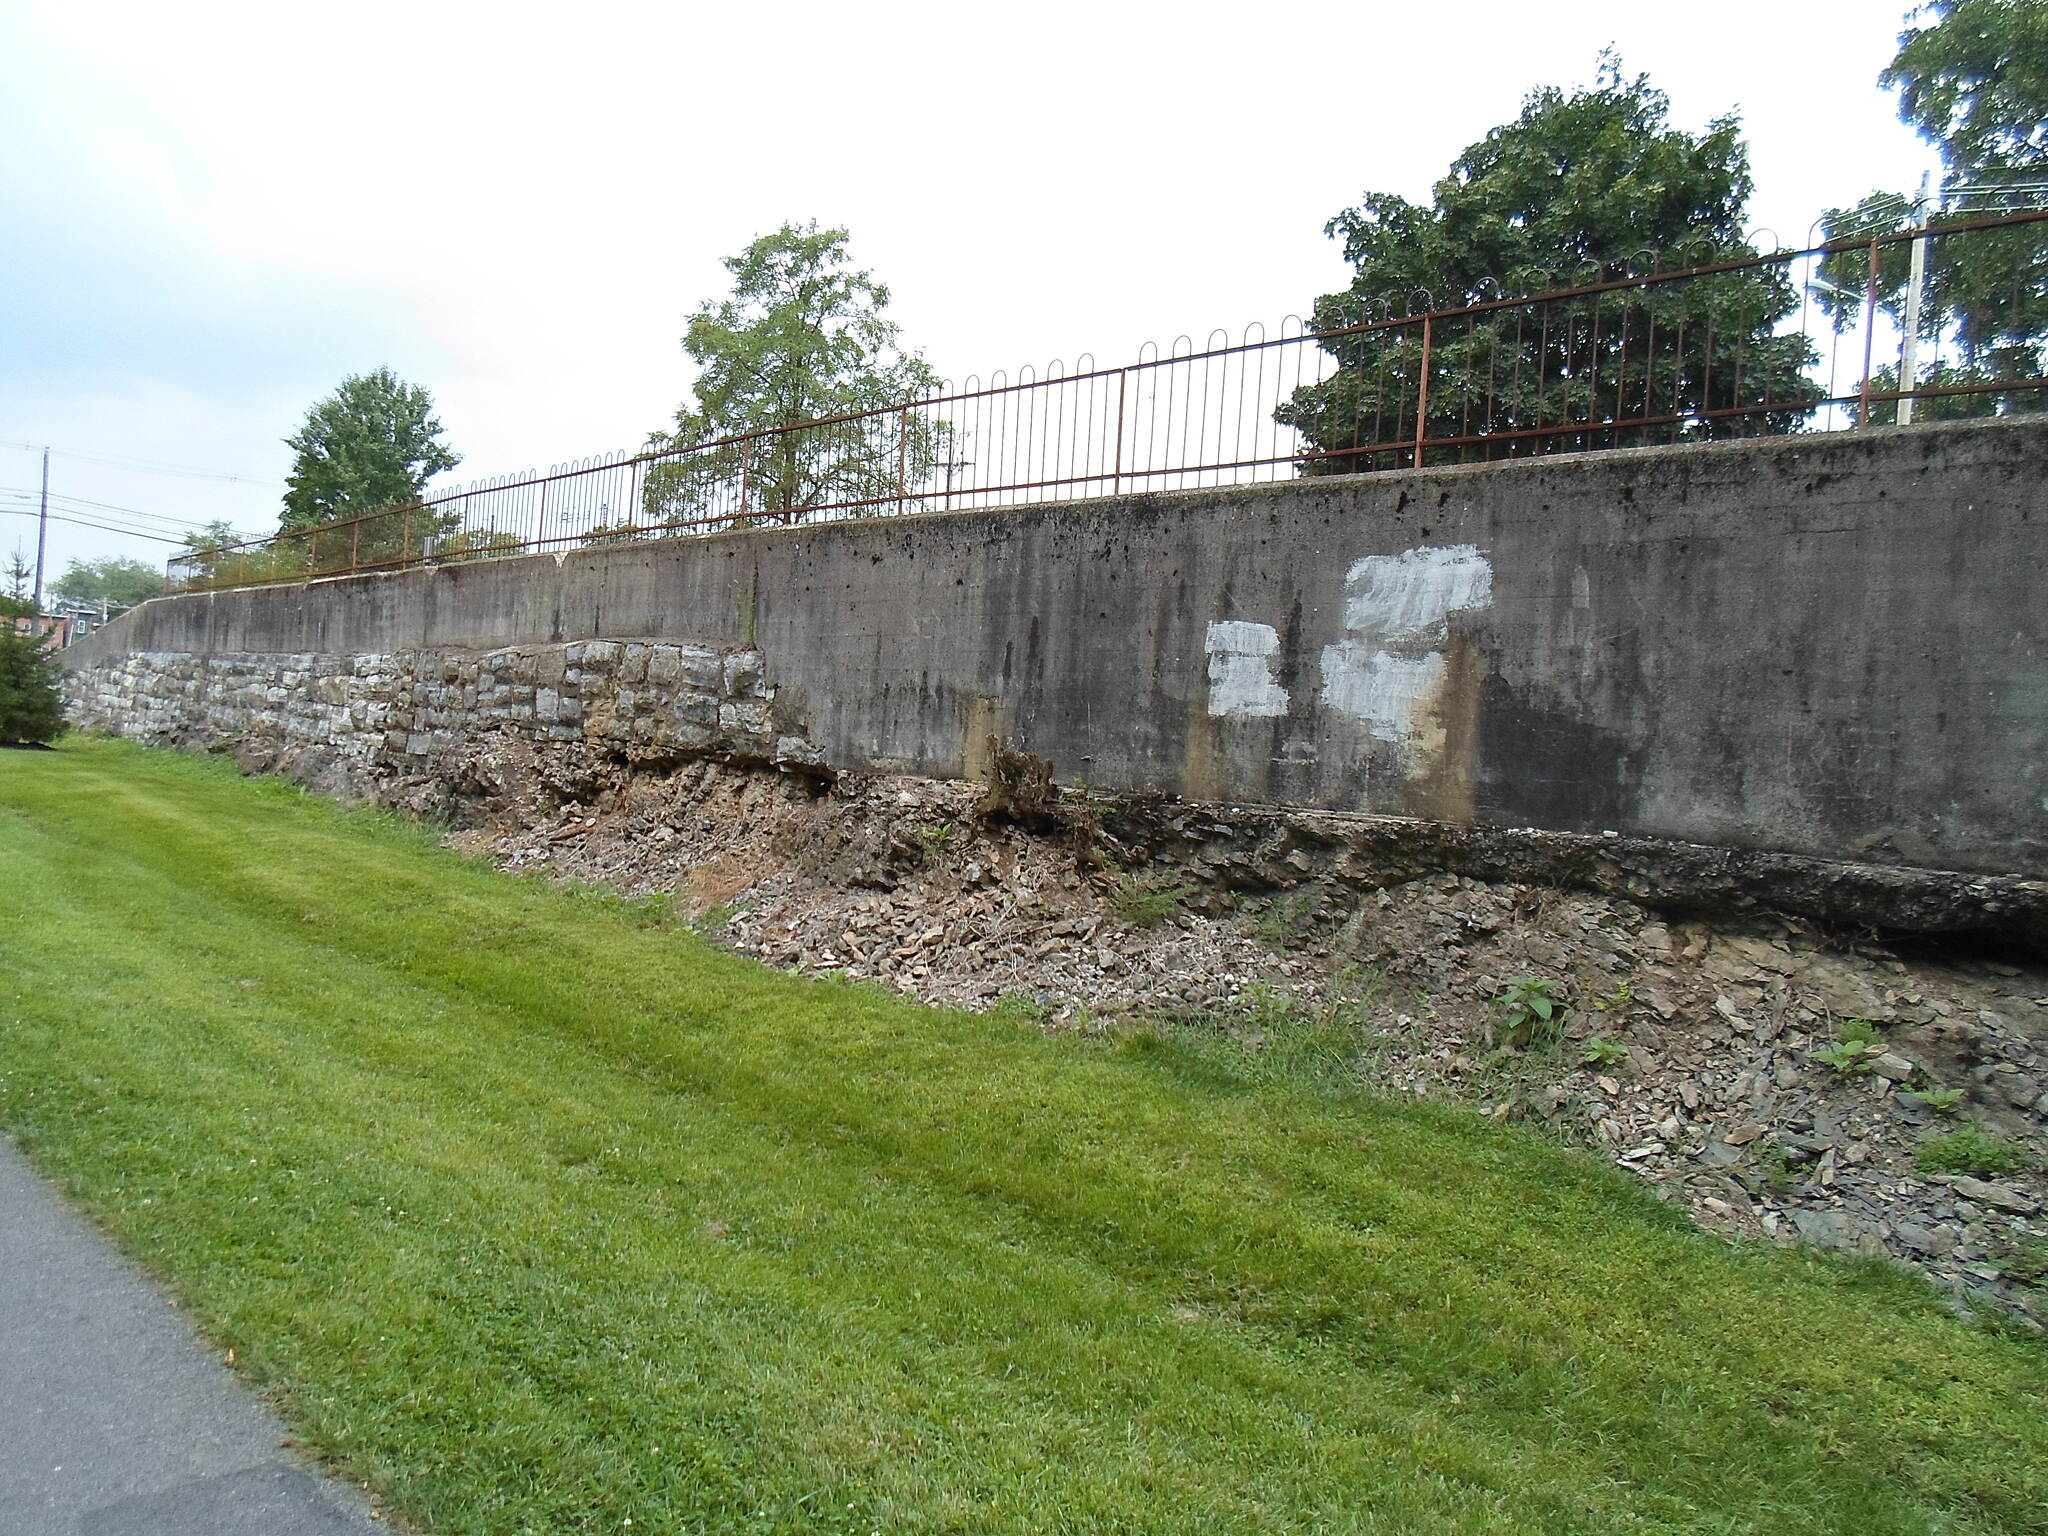 Chambersburg Rail-Trail Chambersburg Rail-Trail Located just north of the High Street intersection, this retaining wall is an interesting feature that can be seen just west of the trail. I don't know what its historical significance is.